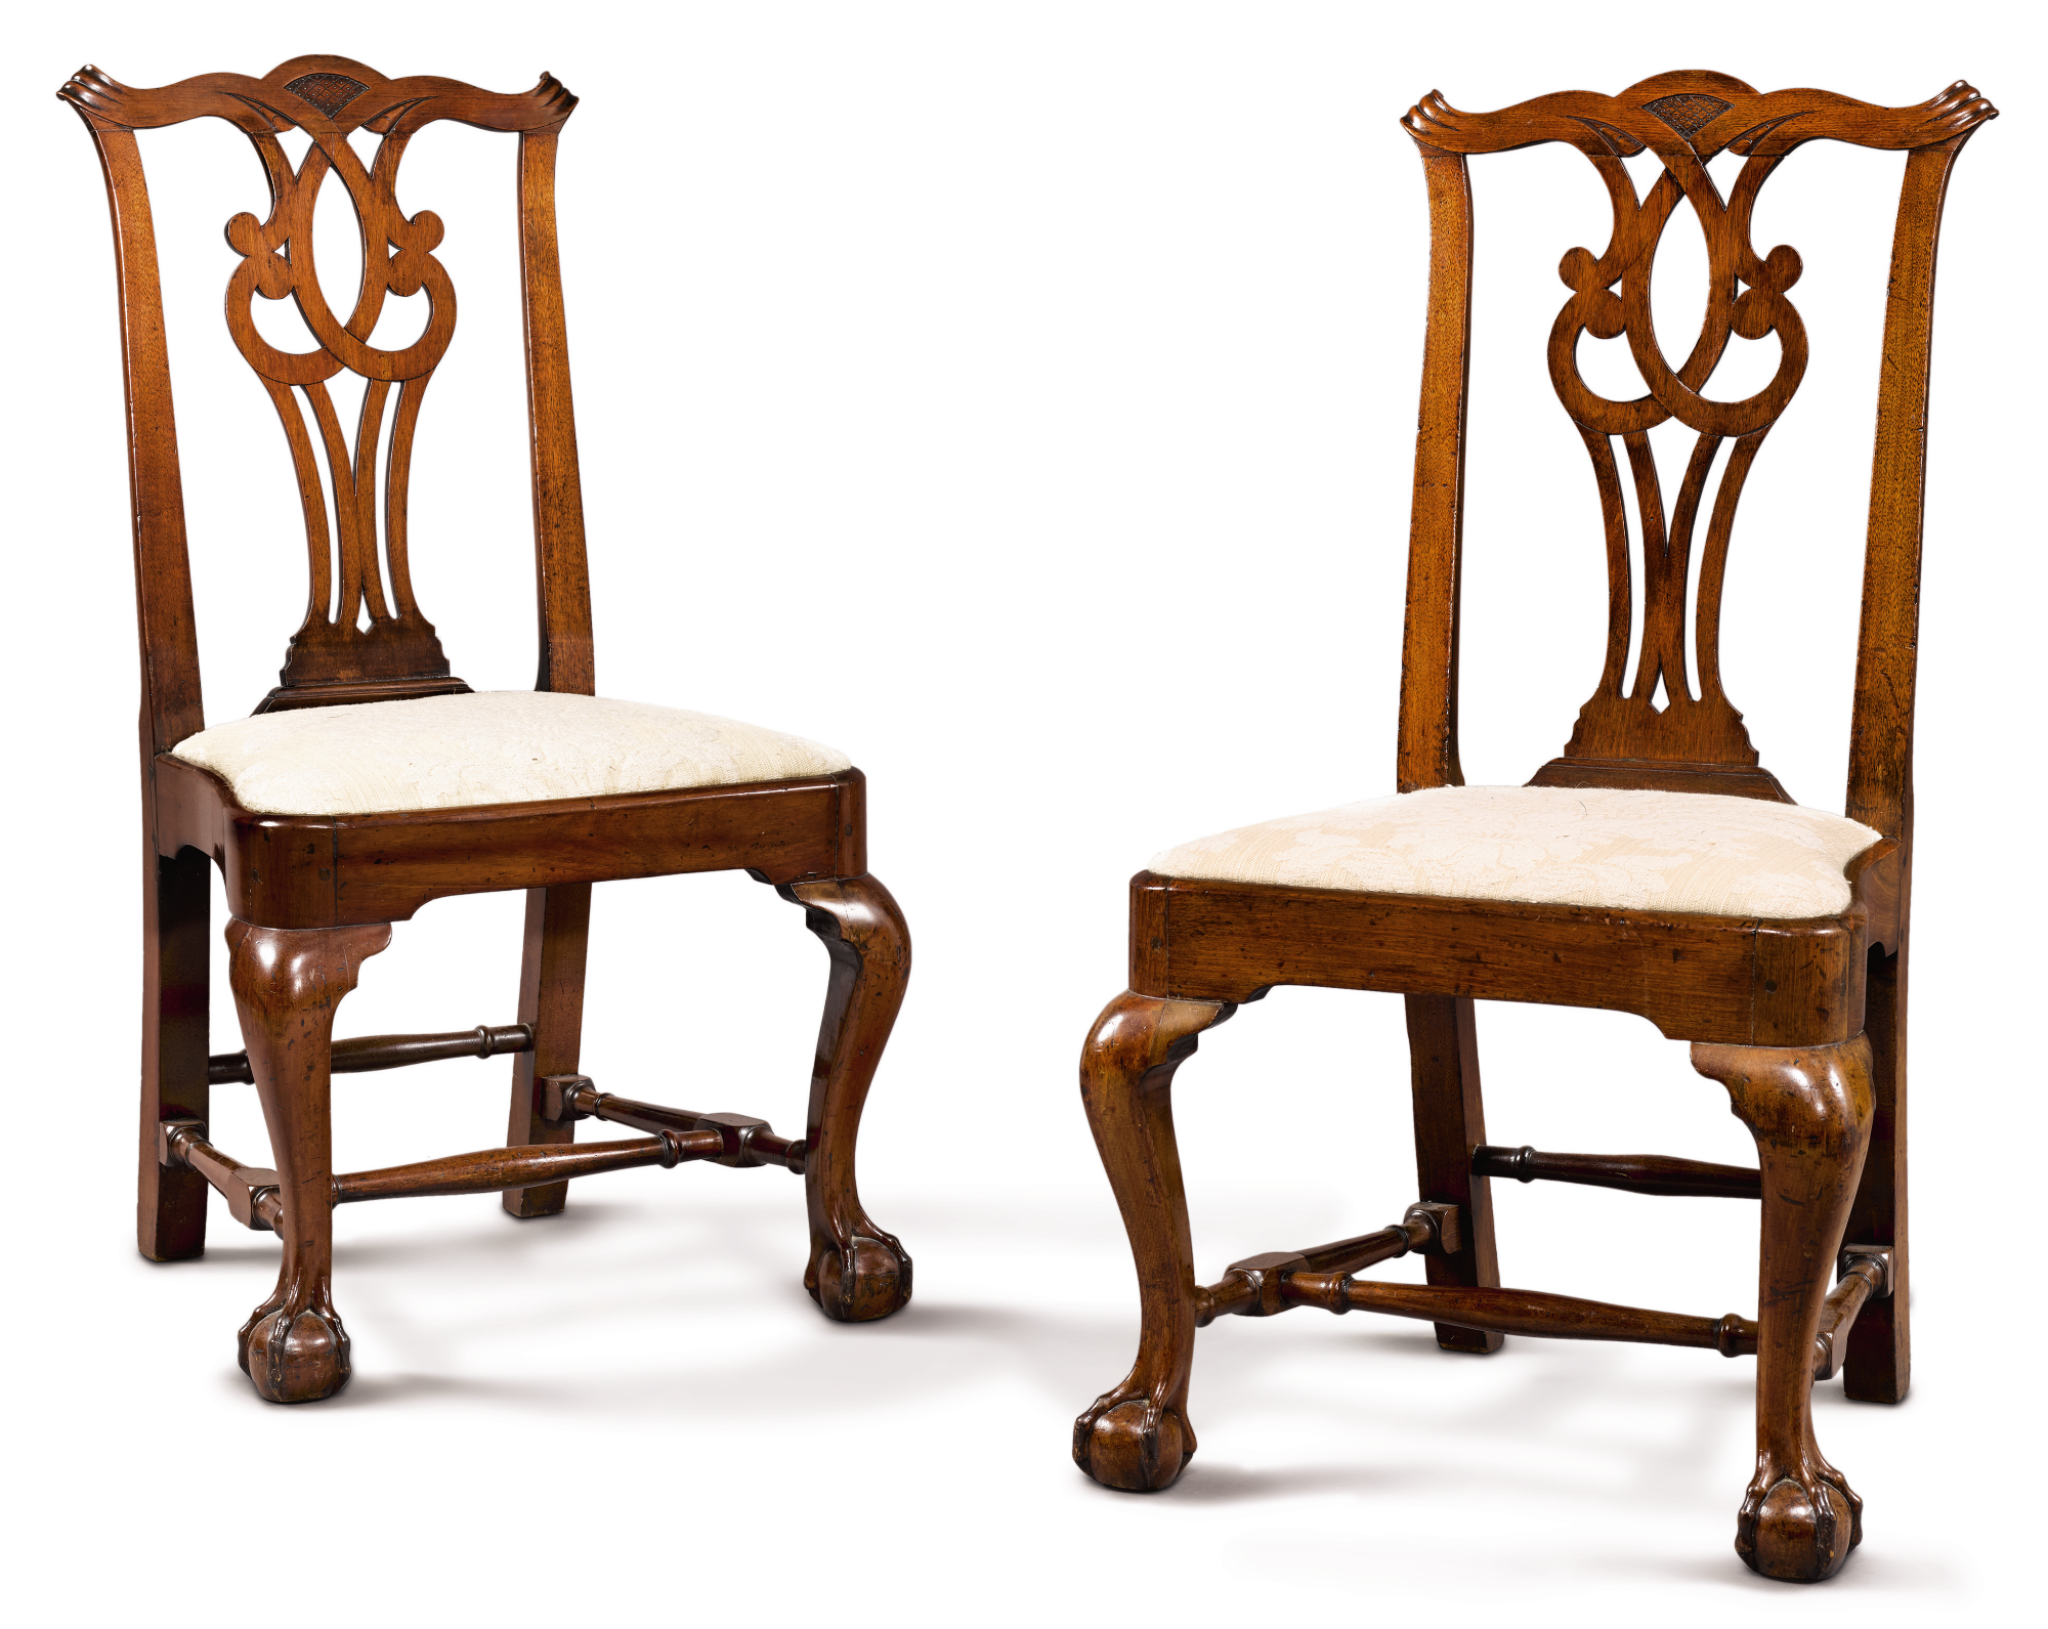 View 1 of Lot 1083.  IMPORTANT PAIR OF CHIPPENDALE CARVED MAHOGANY COMPASS SEAT SIDE CHAIRS, ATTRIBUTED TO JOHN TOWNSEND, NEWPORT, RHODE ISLAND, CIRCA 1770.